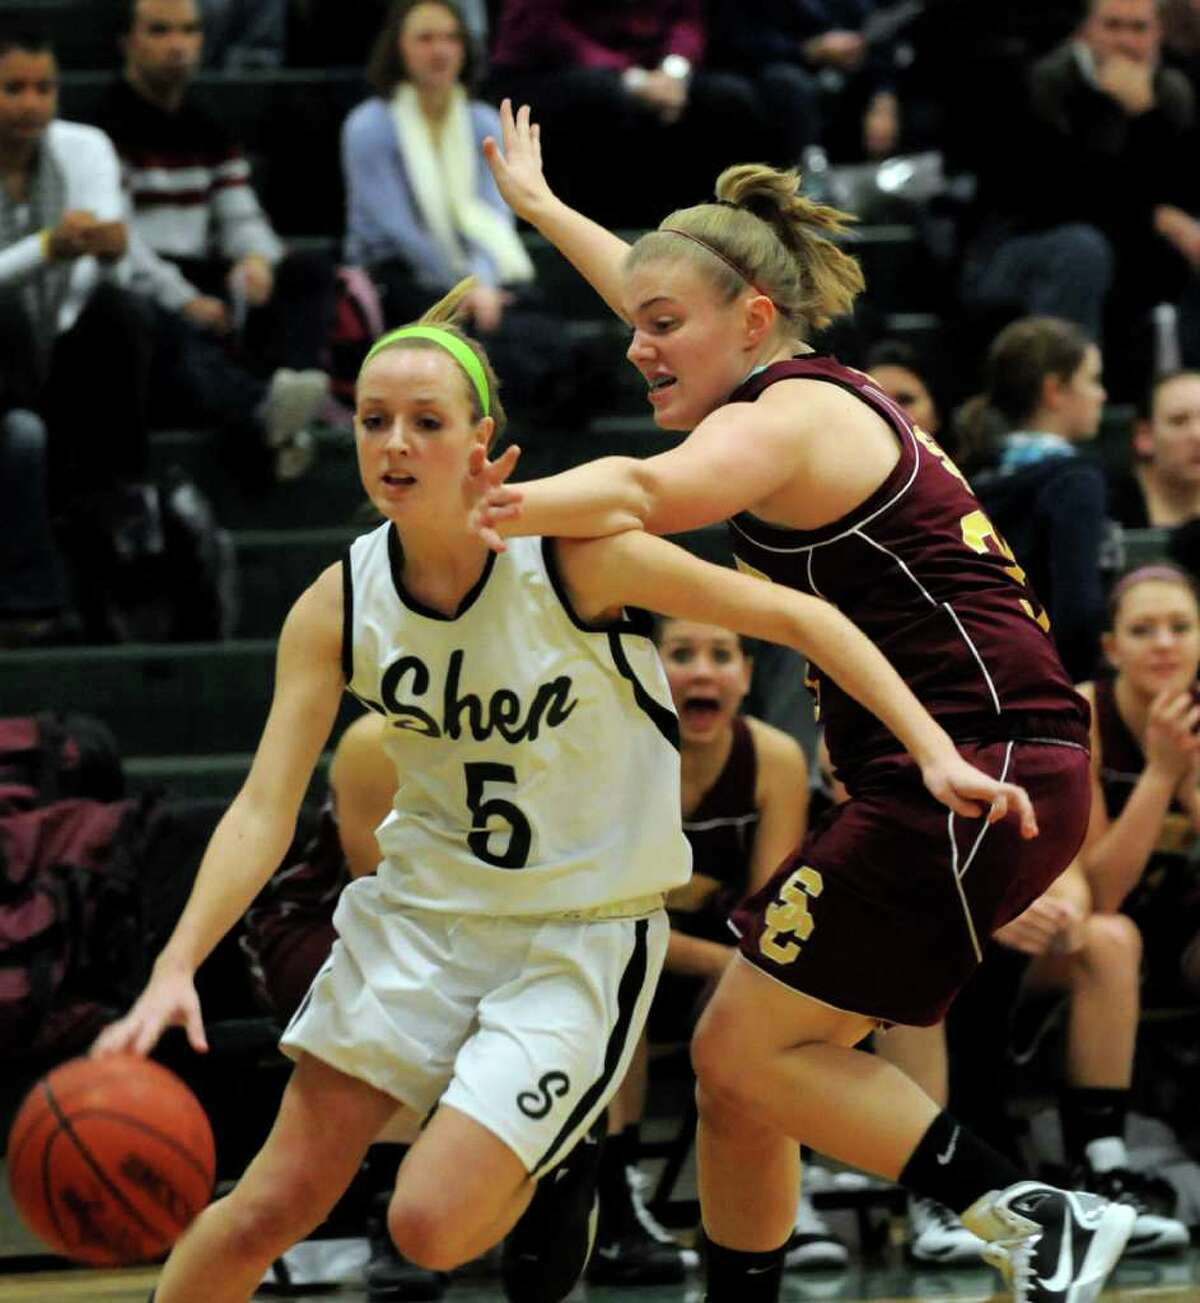 Shen's Mary Kate Cusack (5), right, drives to the hoop as Colonie's Kolbe Robinson (35), right, defends during their basketball game on Friday, Dec. 17, 2010, at Shenendehowa High in Clifton Park, N.Y. (Cindy Schultz / Times Union)